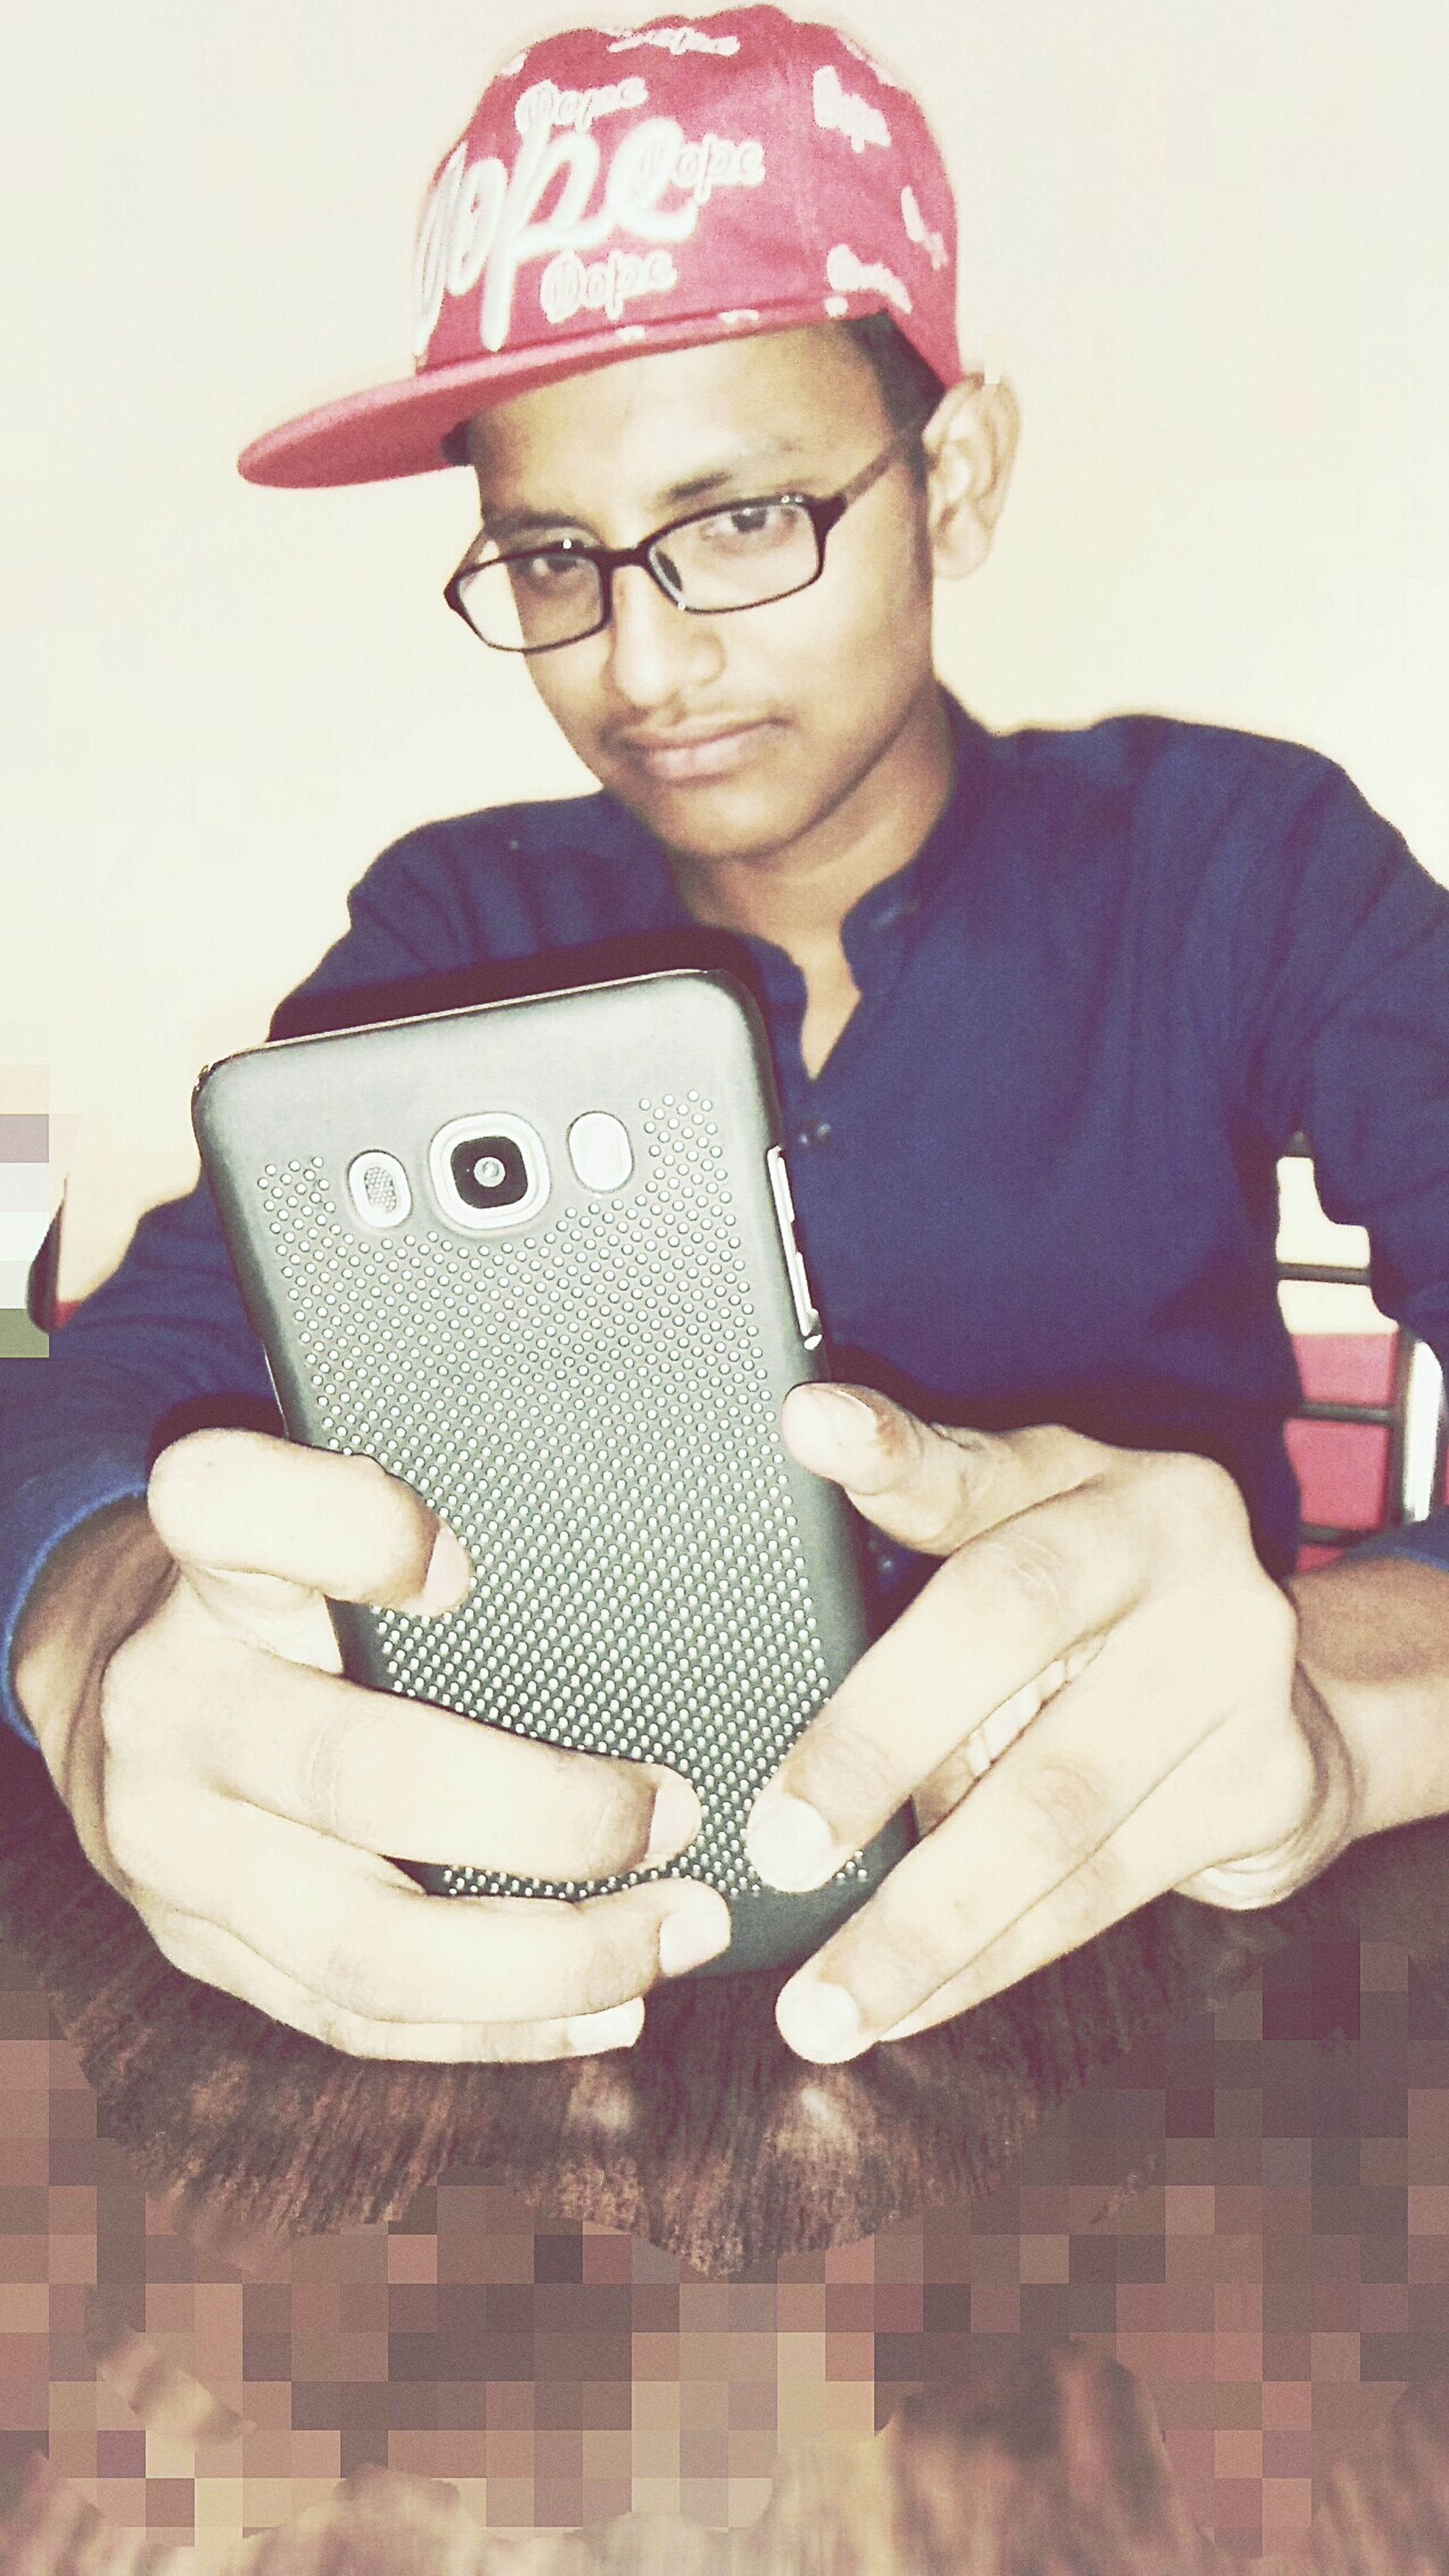 eyeglasses, one person, real people, looking at camera, cap, portrait, glasses, technology, sitting, indoors, young adult, wireless technology, day